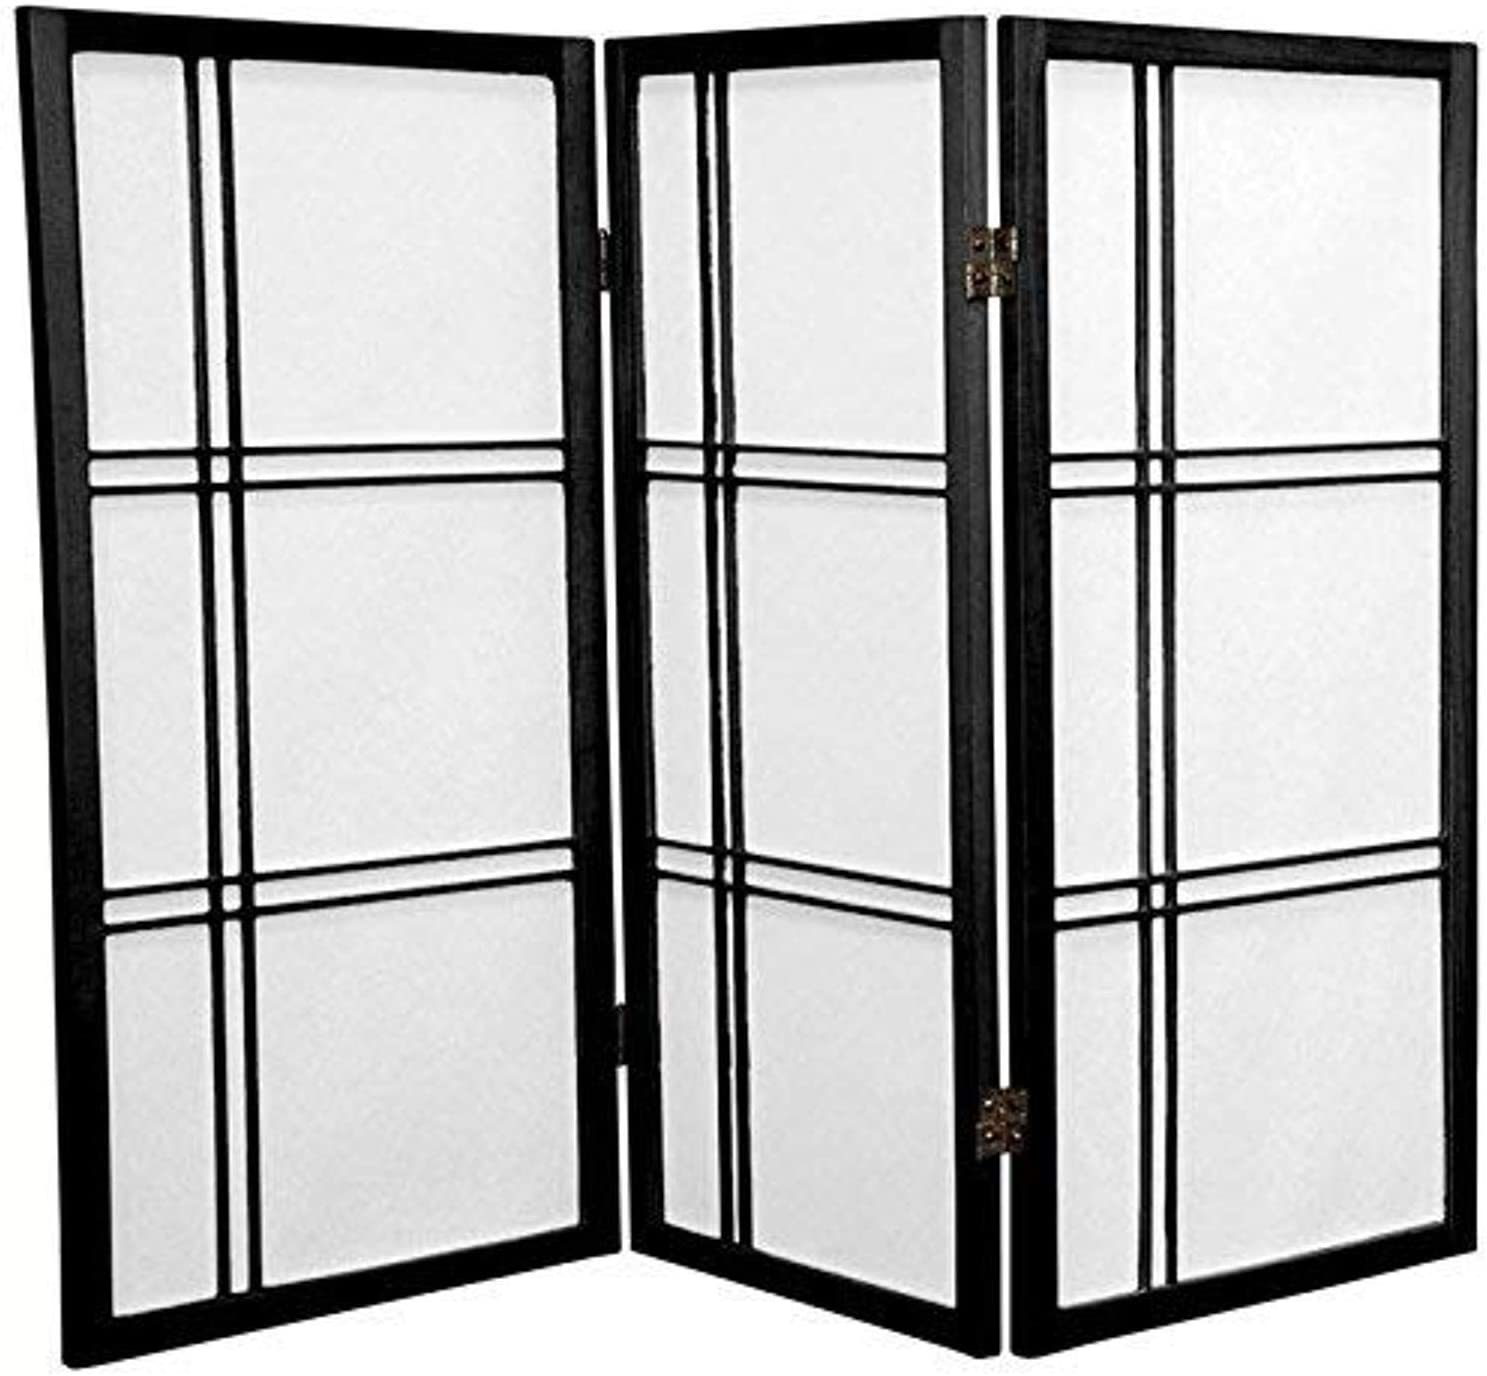 Oriental Furniture 3 ft. Tall Double Cross Shoji Screen - Black - 3 Panels